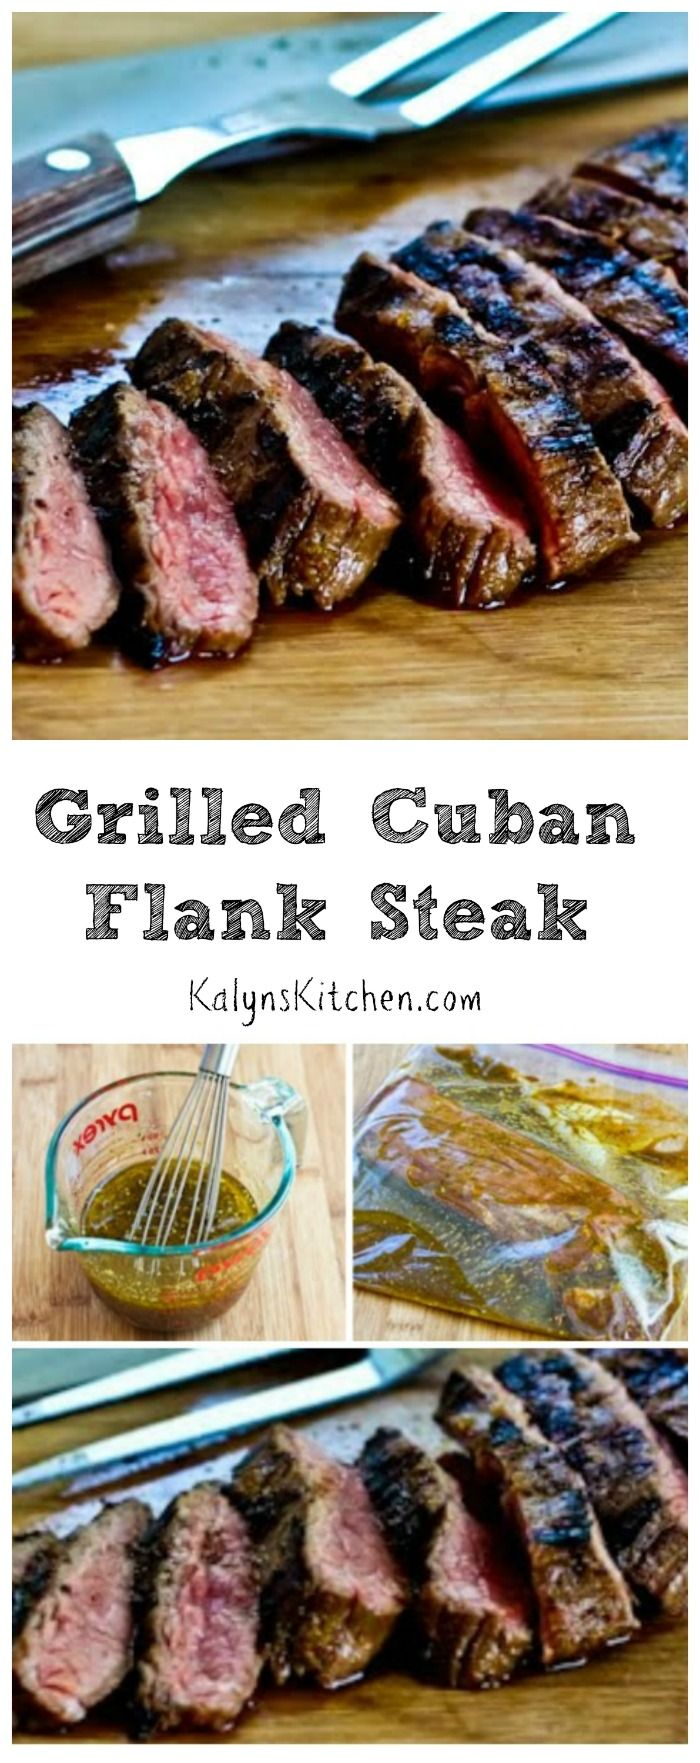 This Grilled Cuban Flank Steak will be a hit with all the beef lovers; perfect for every summer holiday party when you want something special to serve on the grill.  This recipe is Low-Carb, Gluten-Free, South Beach Diet friendly, and Paleo, and it's delicious.  [from KalynsKitchen.com]